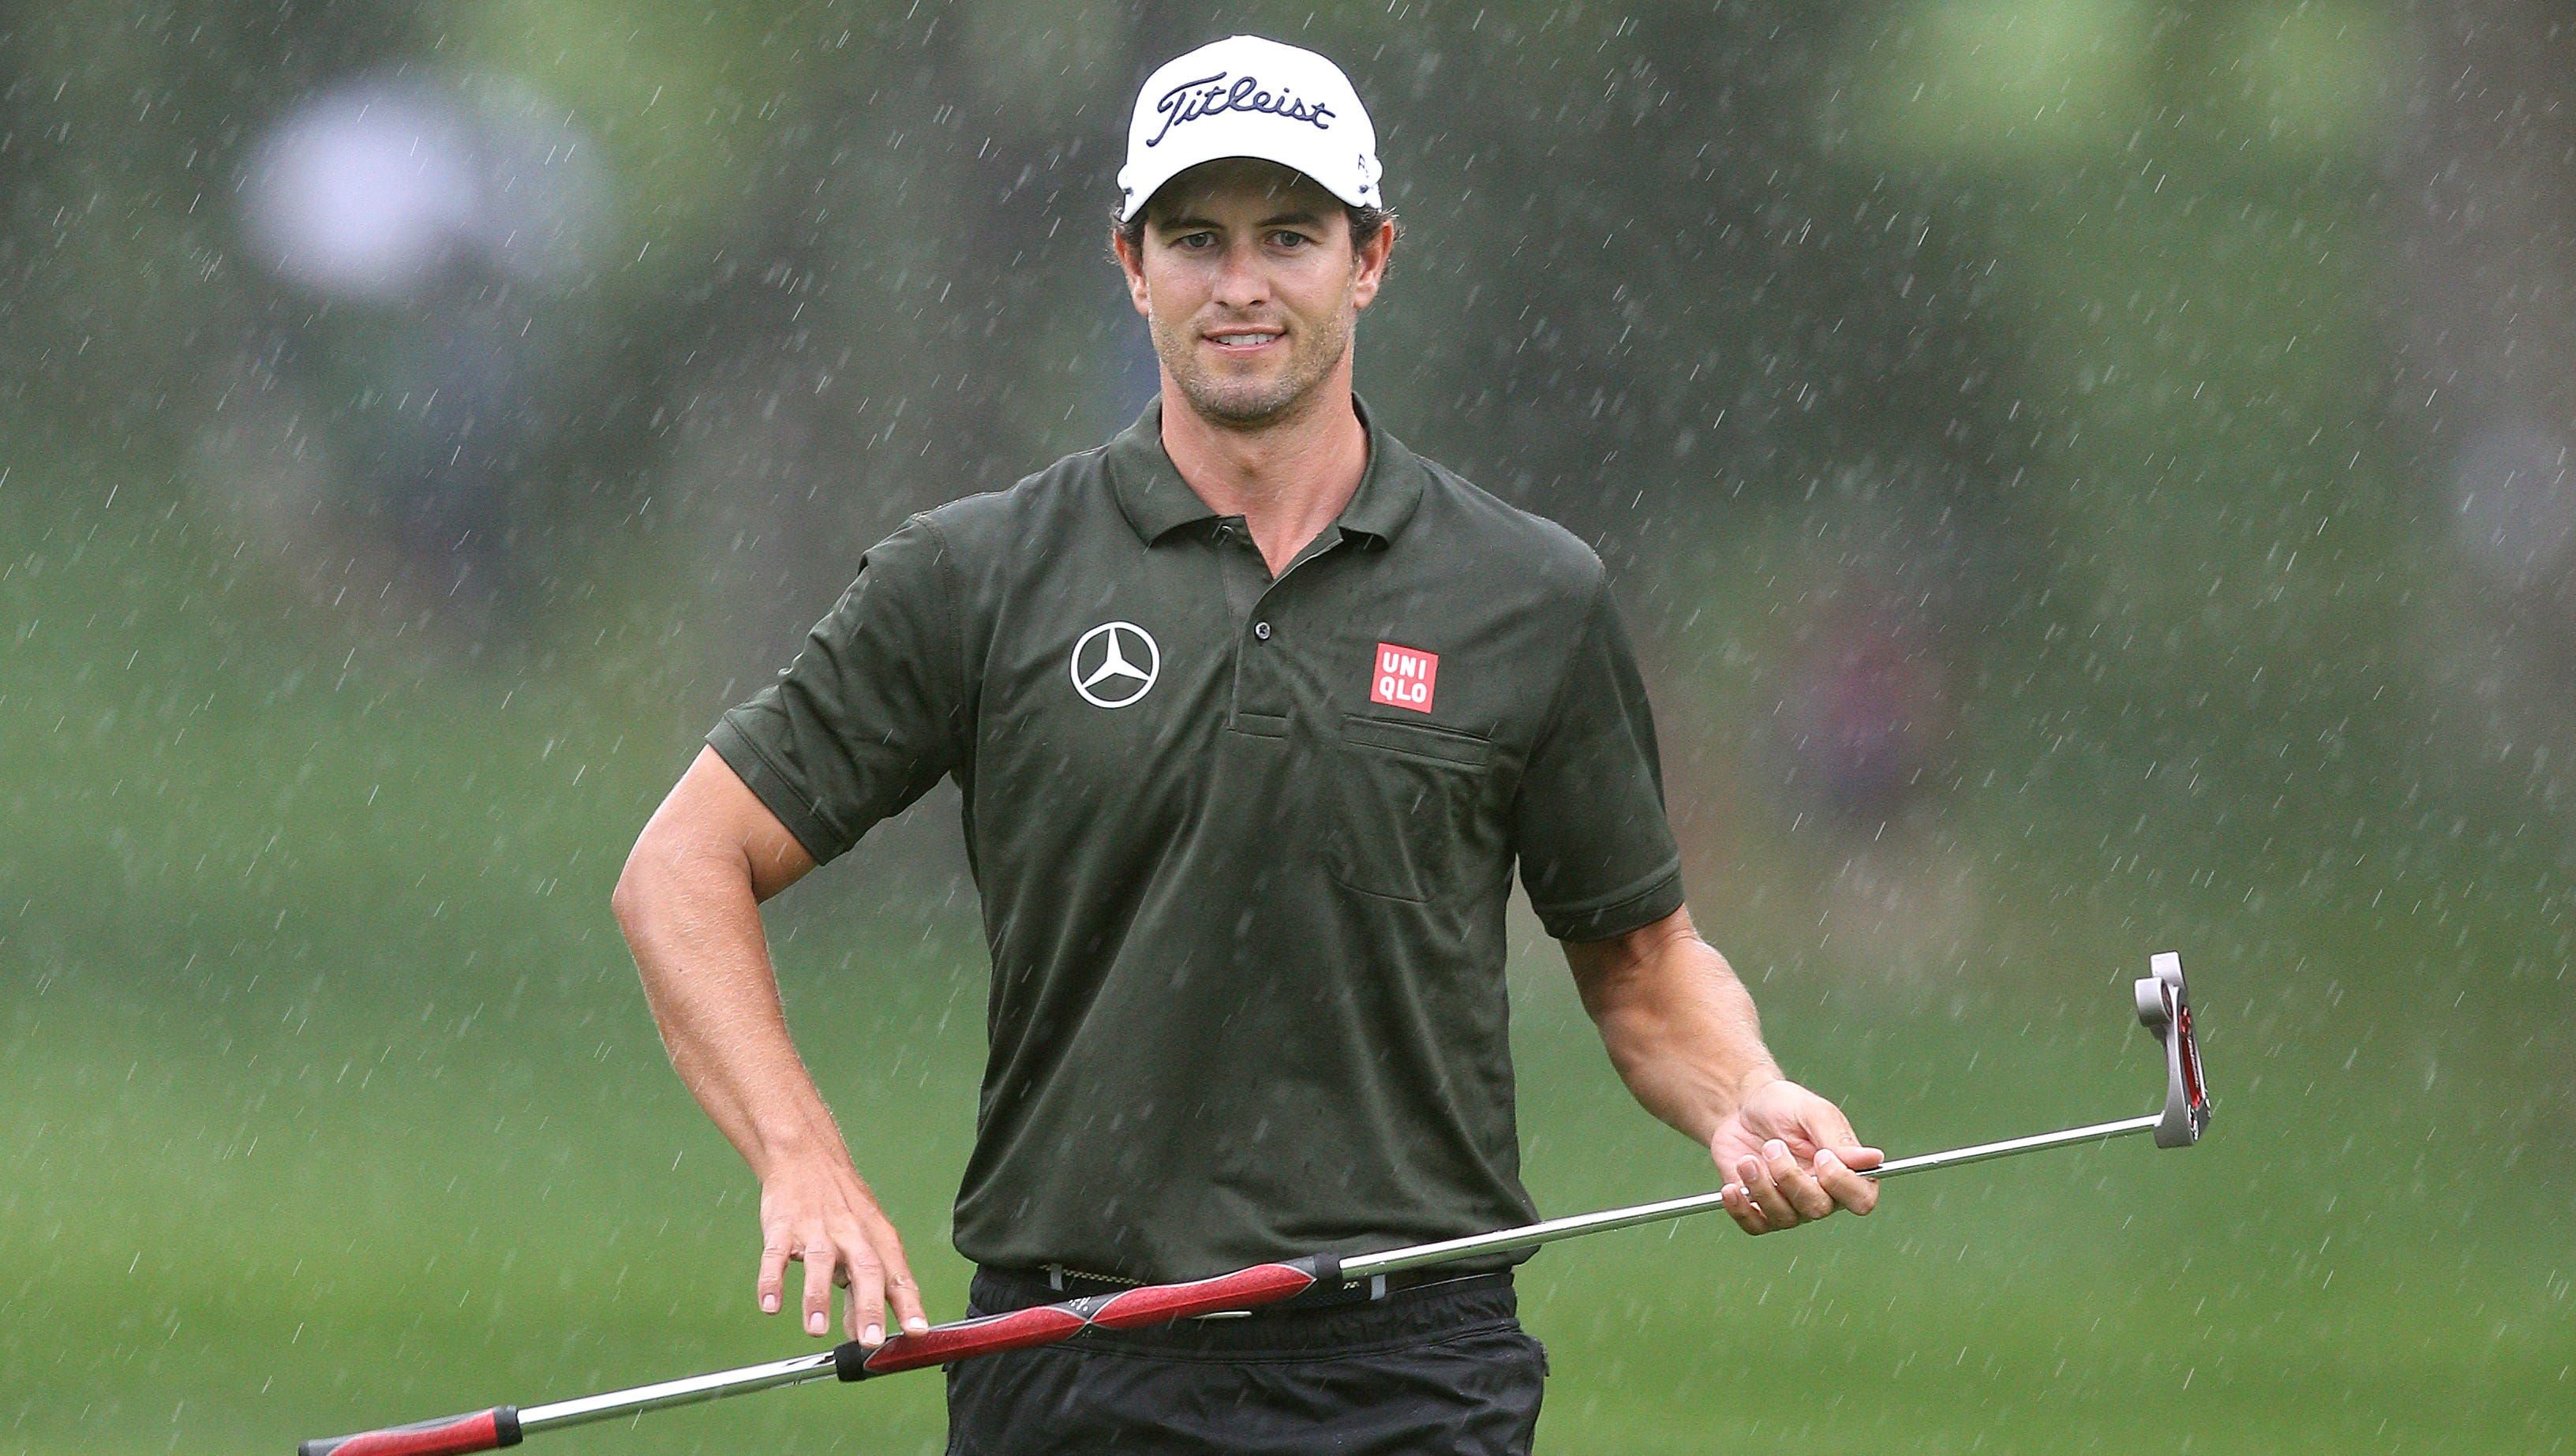 Adam Scott reacts to his putt on 17 during the second round of the PGA Championship at Oak Hill CC.